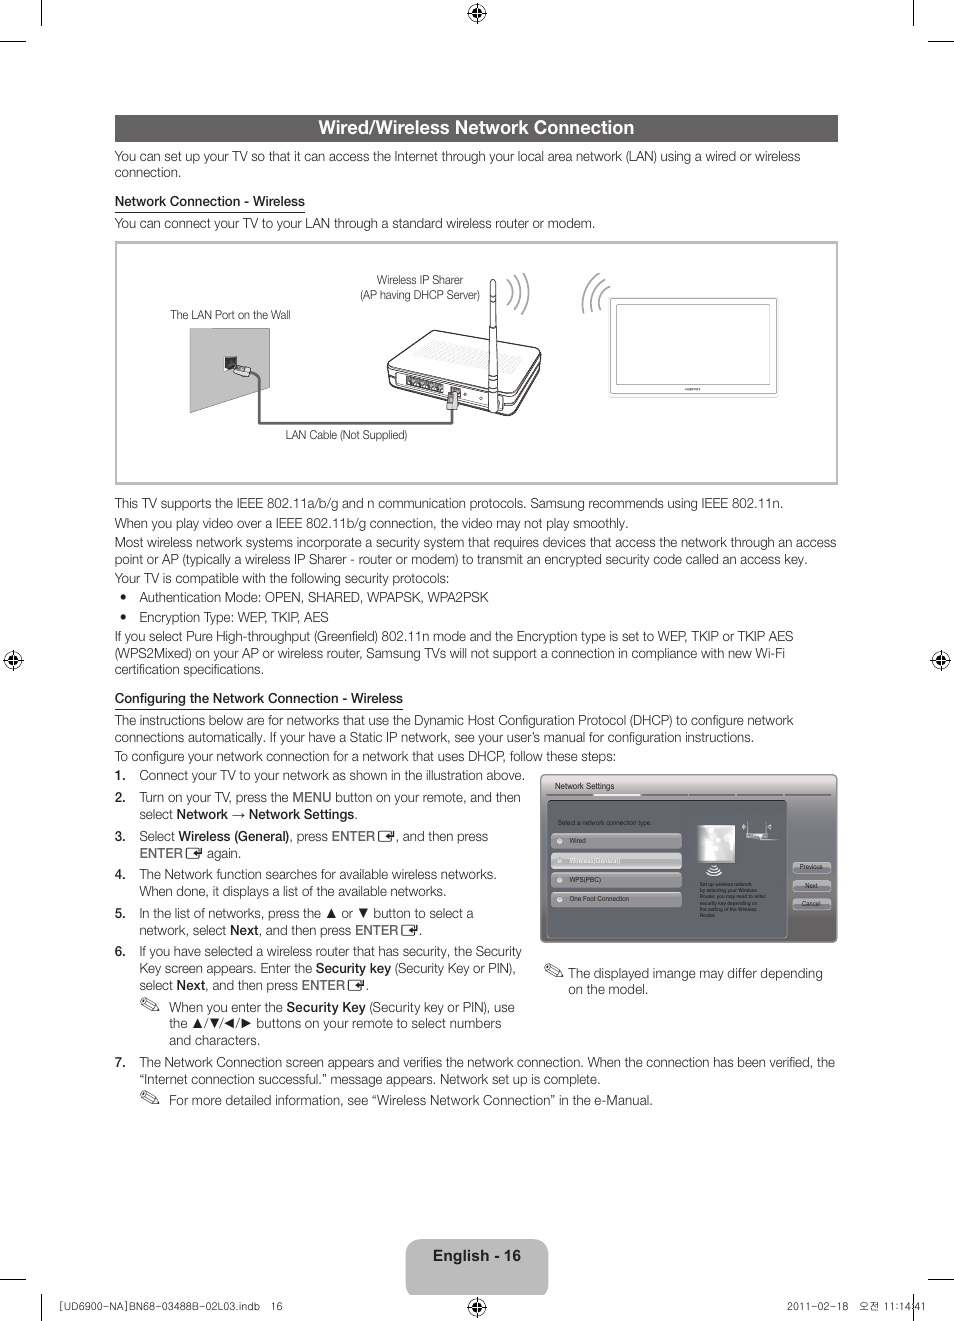 Wired Wireless Network Connection Samsung Un46d6900wfxza User Diagram Manual Page 16 74